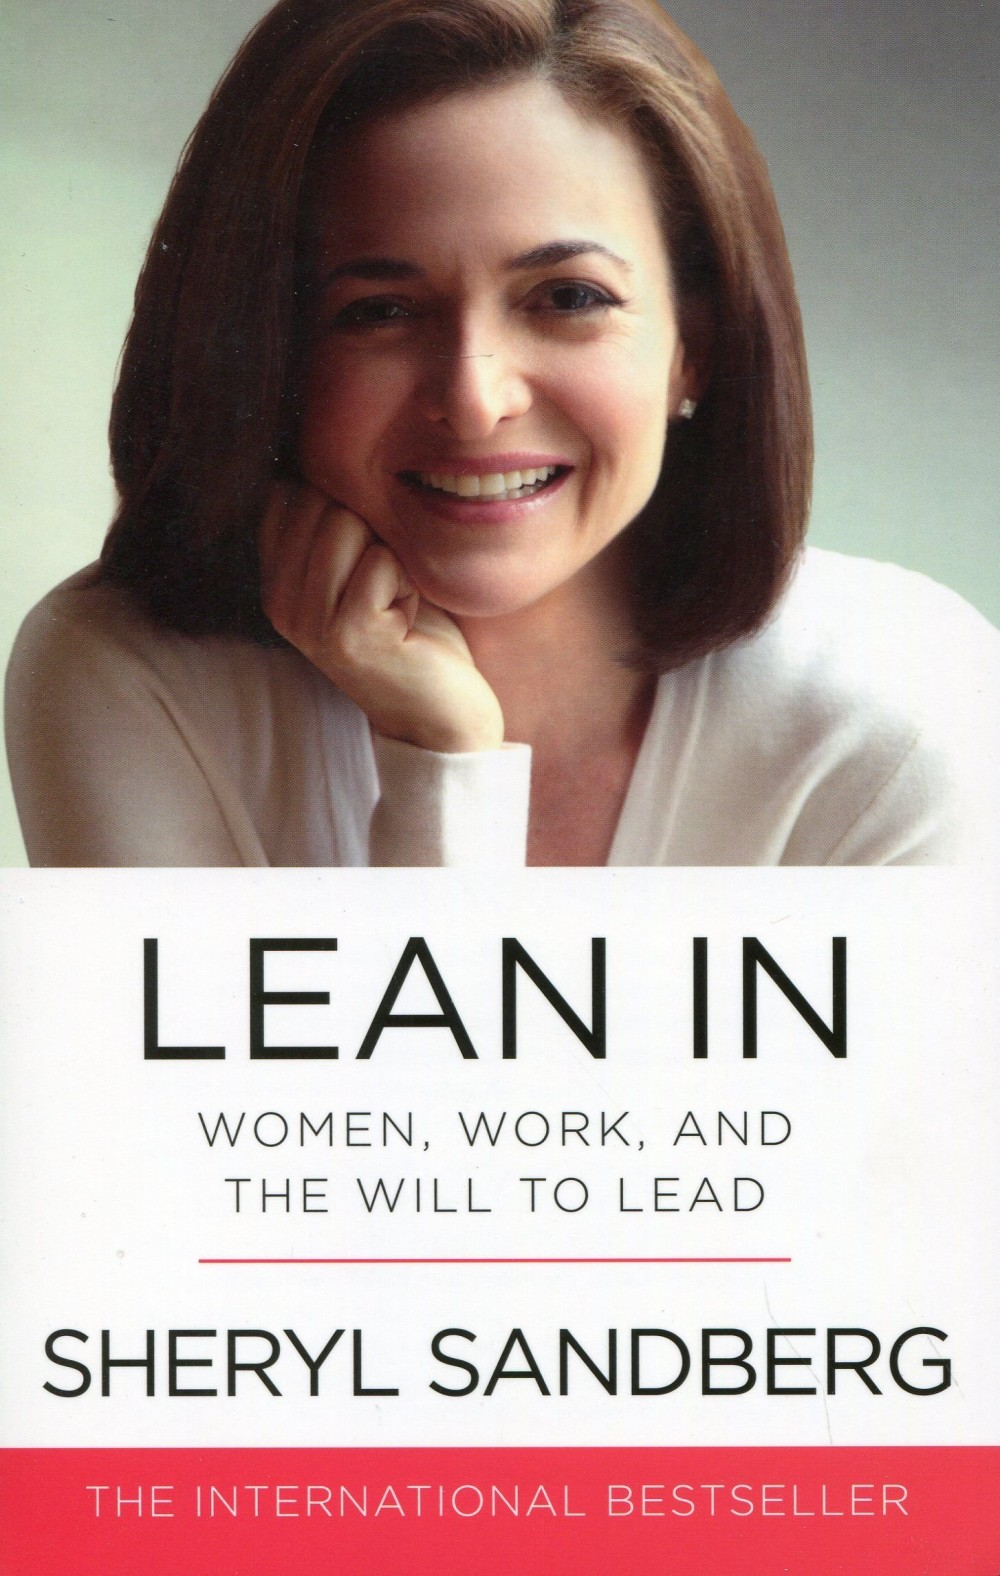 Lean In: Women, Work, and the Will to Lead Sheryl Sandberg